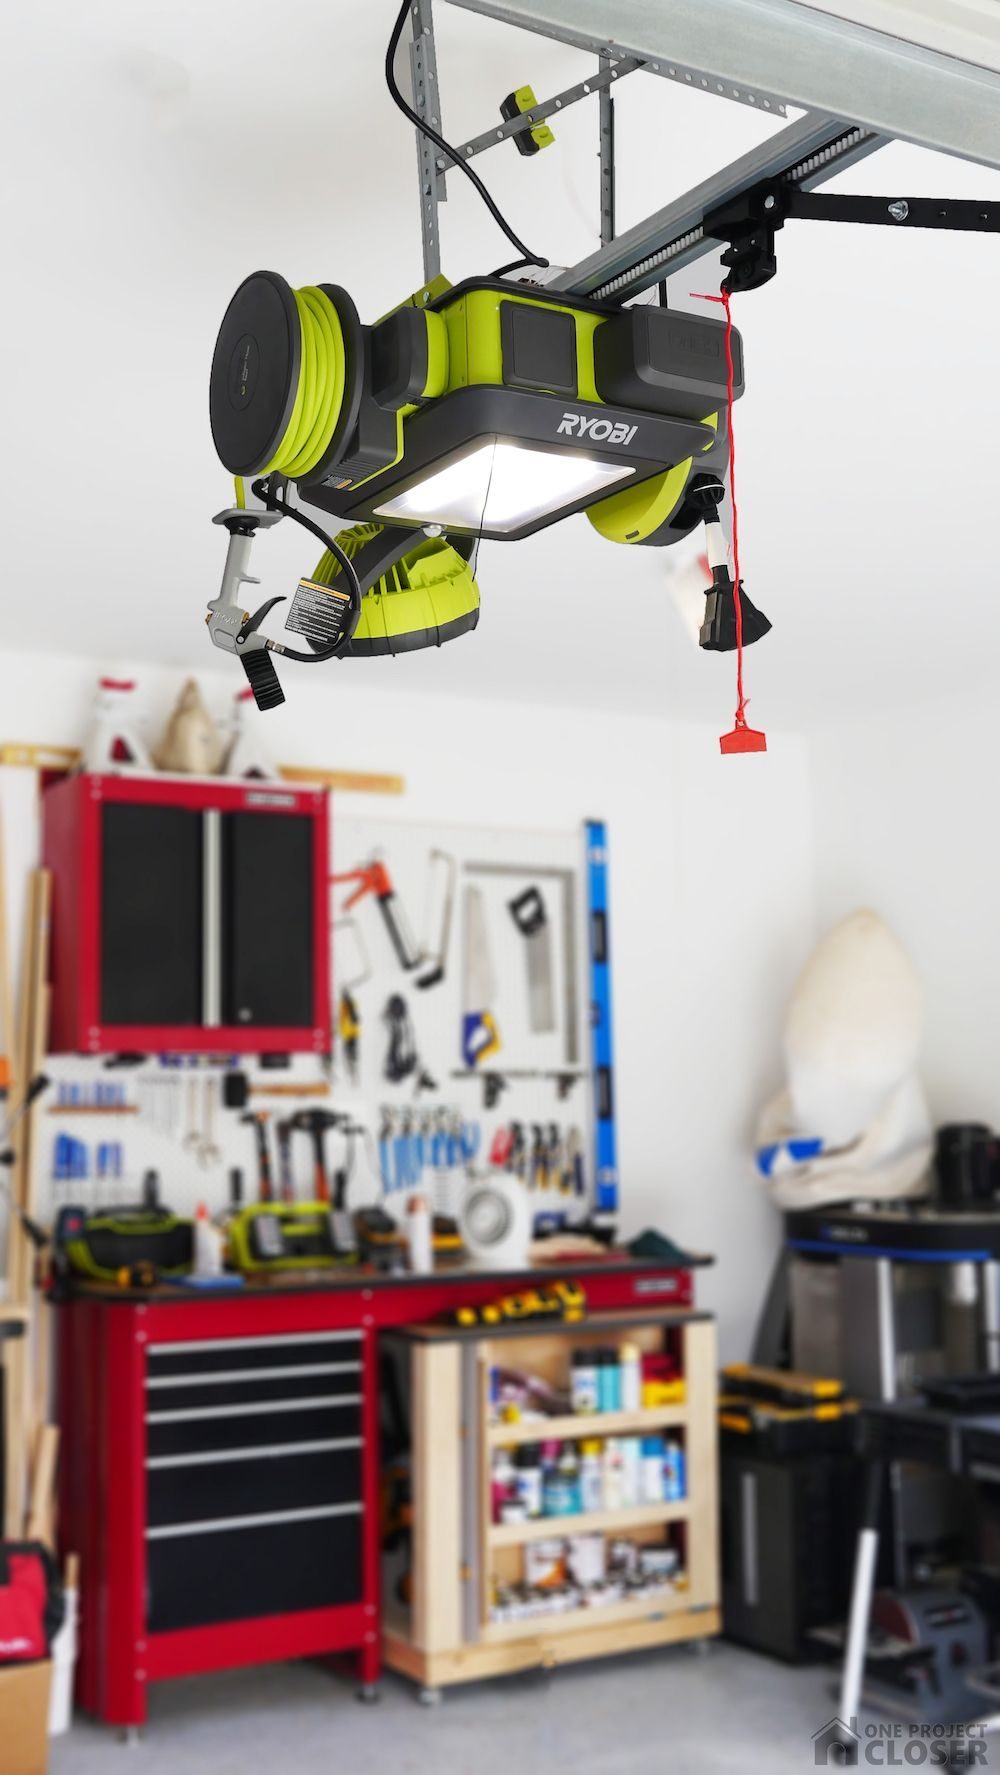 Ryobi Garage Door Opener Review This is one seriously epic